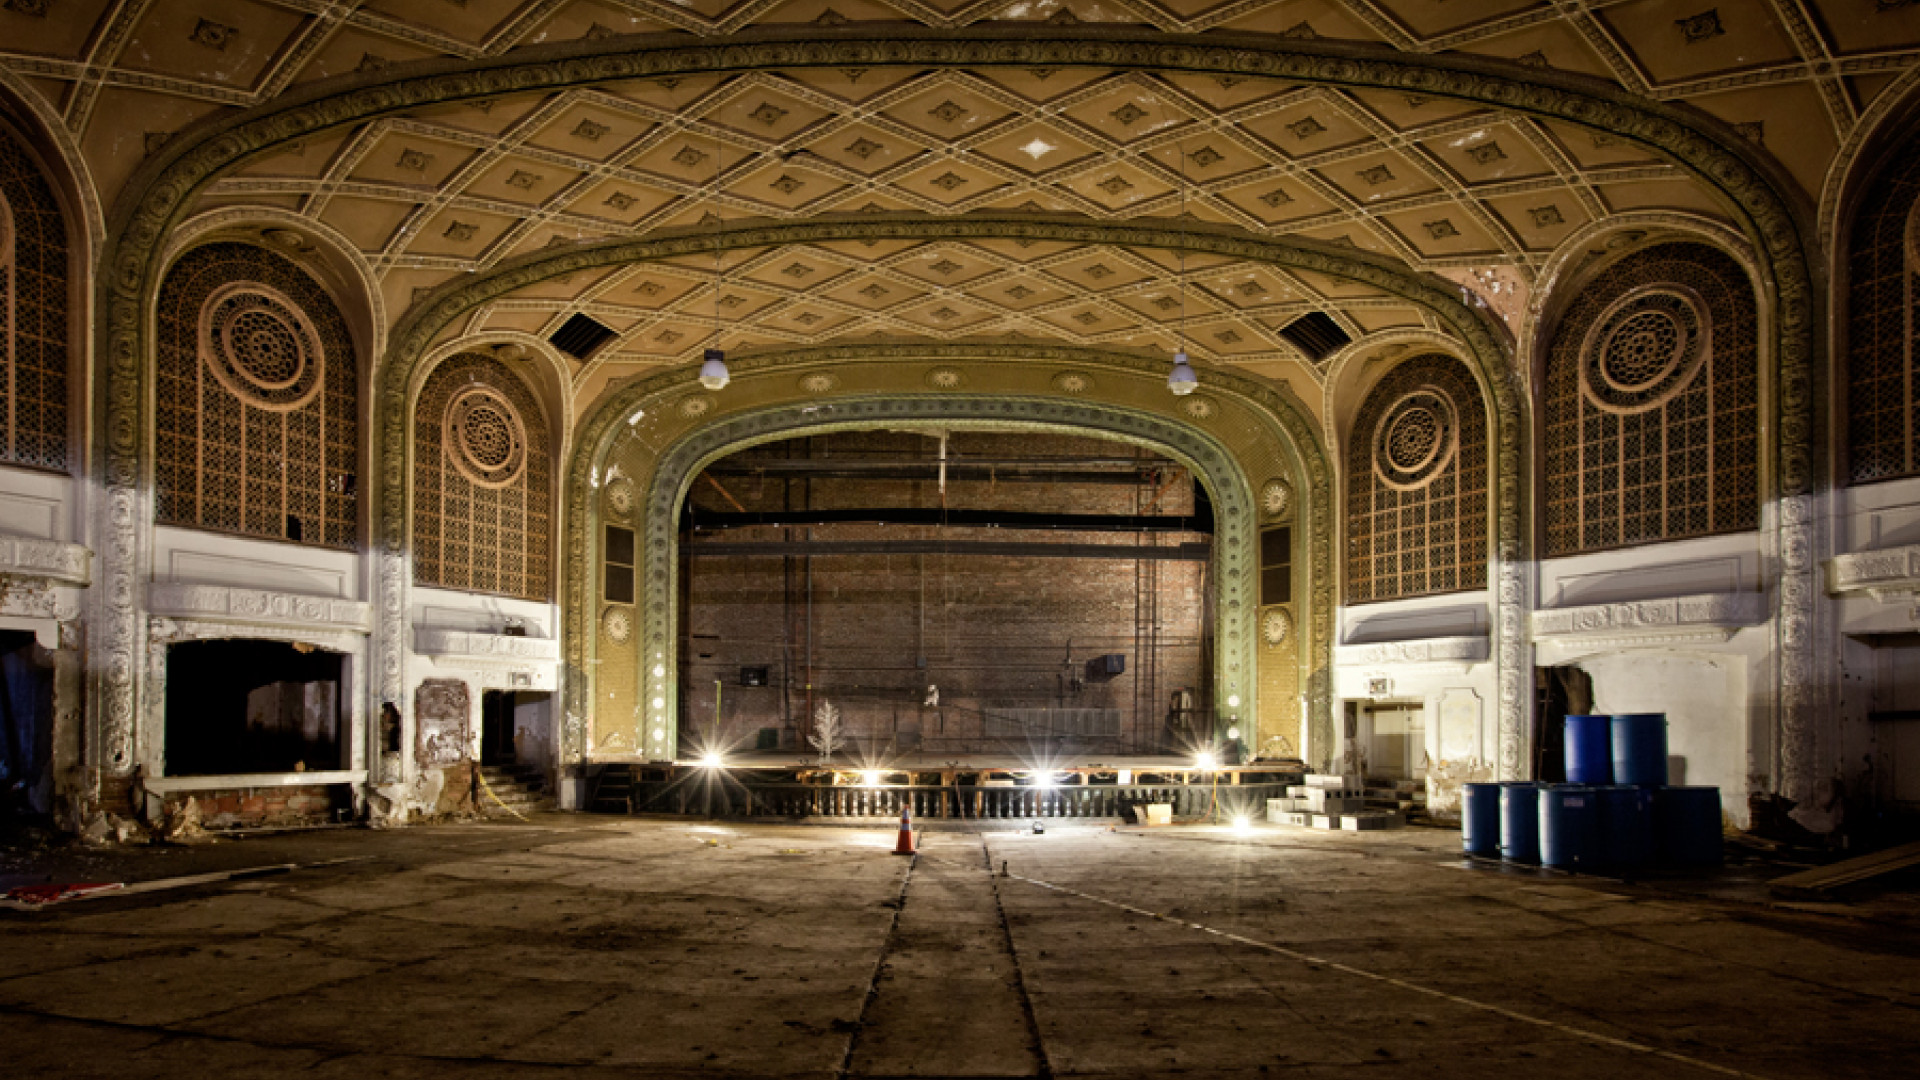 Renovaton work on the Variety Theater in Cleveland, Ohio